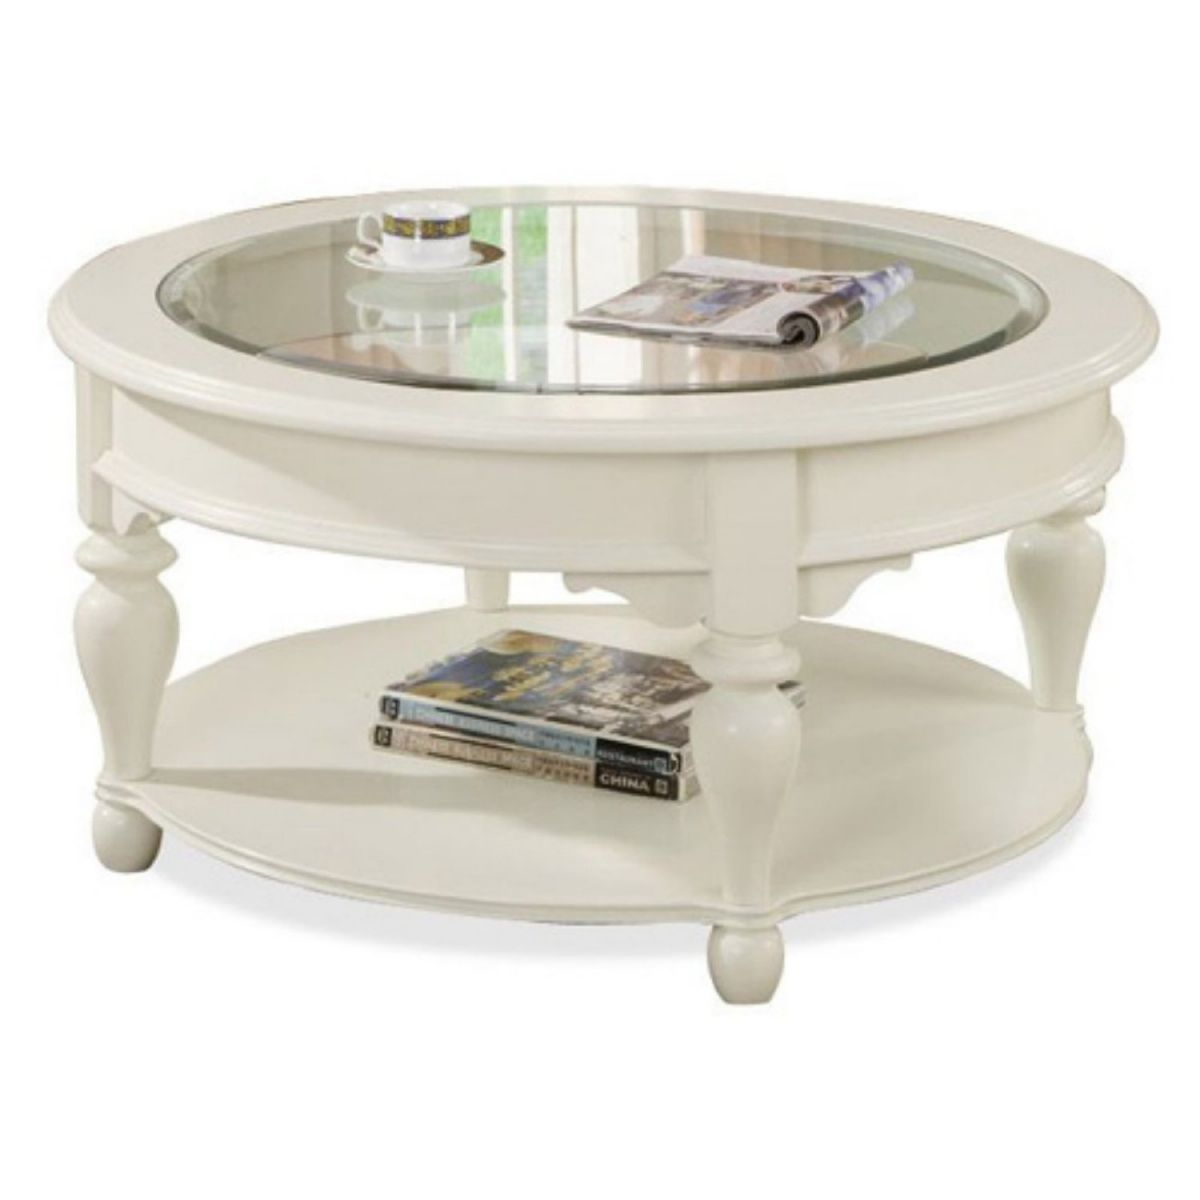 Shabby Chic Round Wood Coffee Table: Illustration Of The Round Coffee Tables With Storage